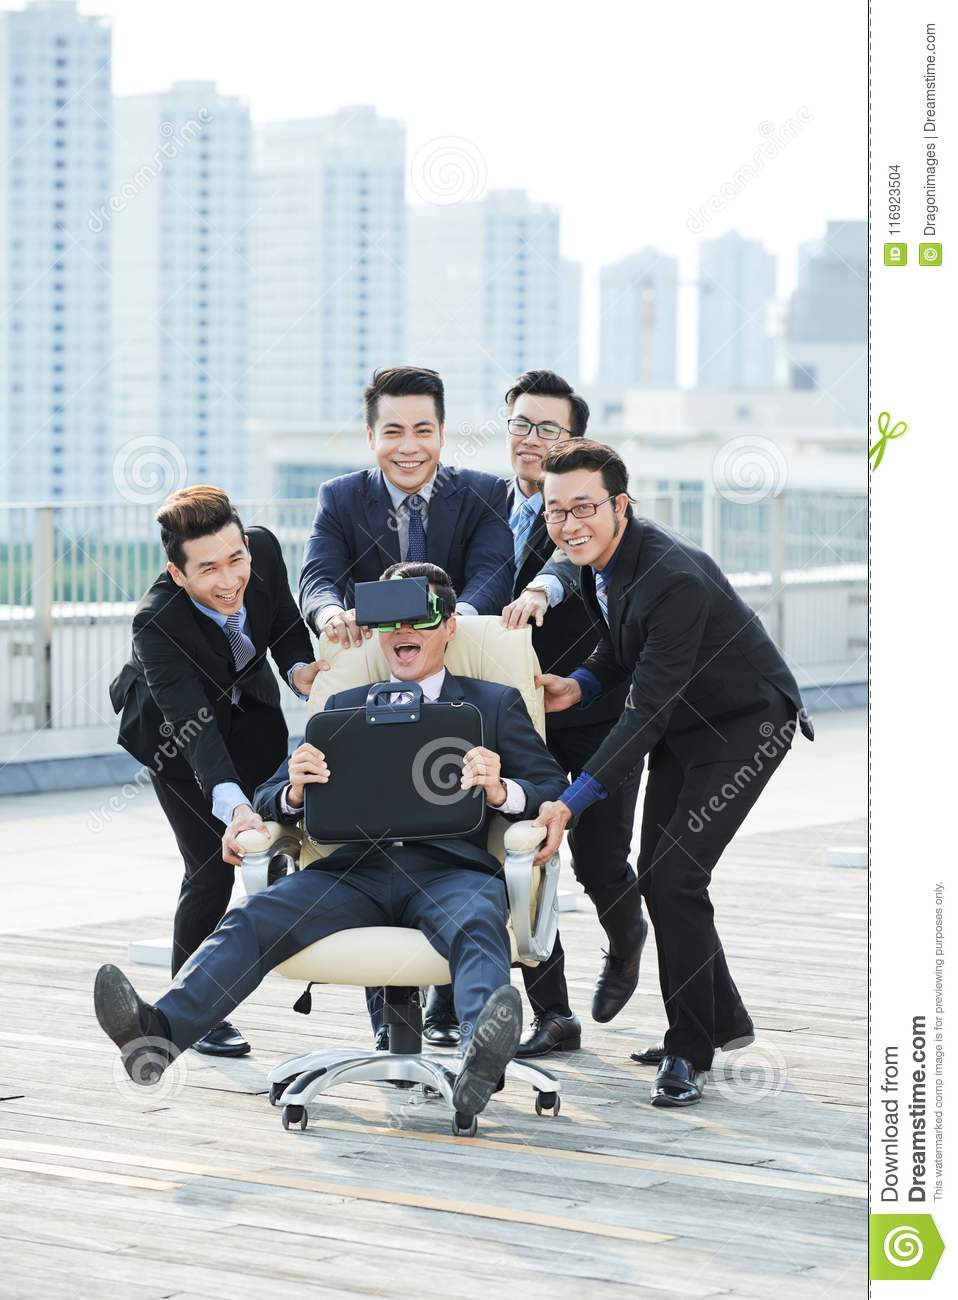 swivel chair vr wicker back chairs playing fool at spacious terrace stock photo image of happy surprised businessman wearing headset sitting on with briefcase in hands while his cheerful colleagues pushing it along